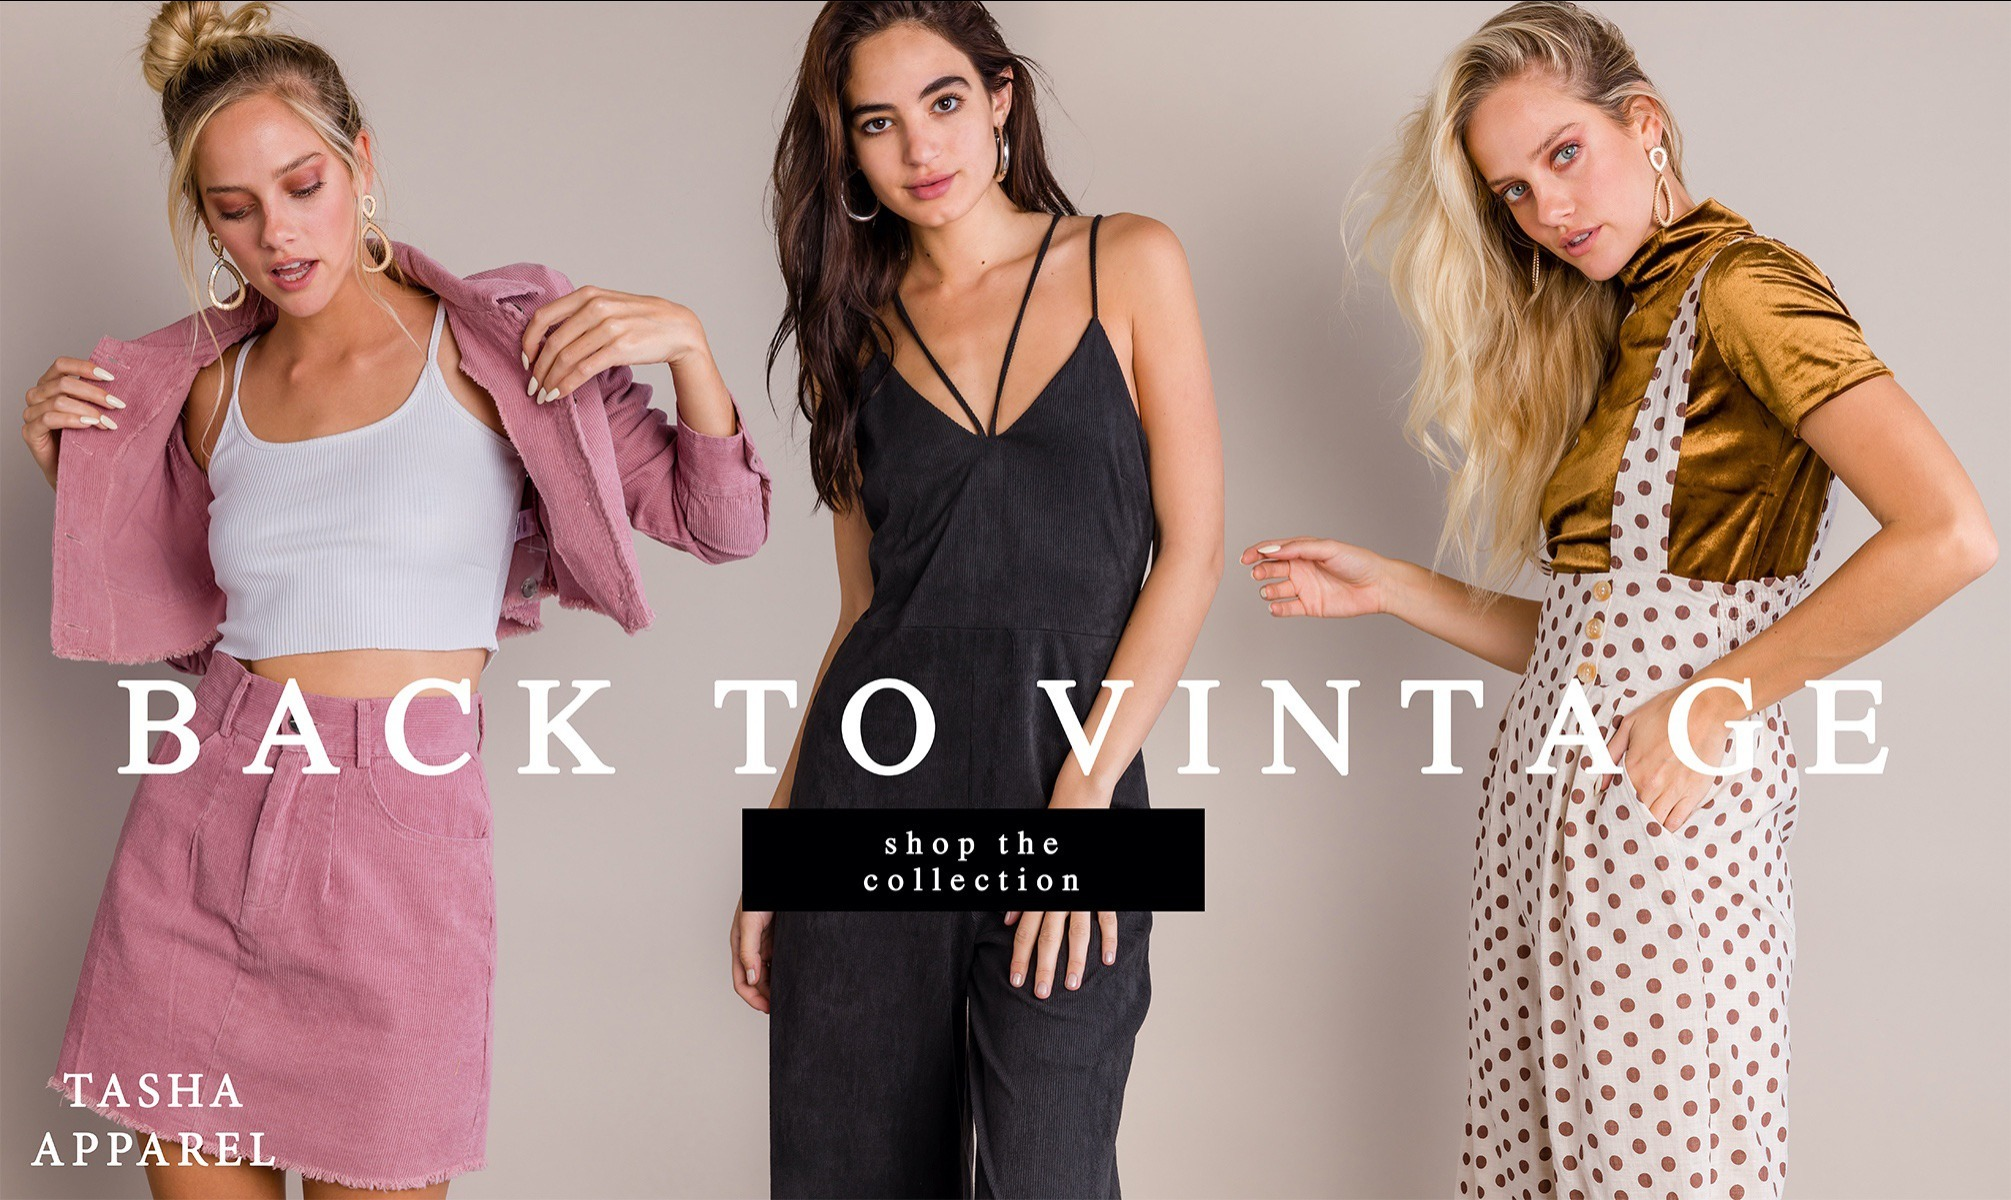 wholesale clothing back to vintage retro chic